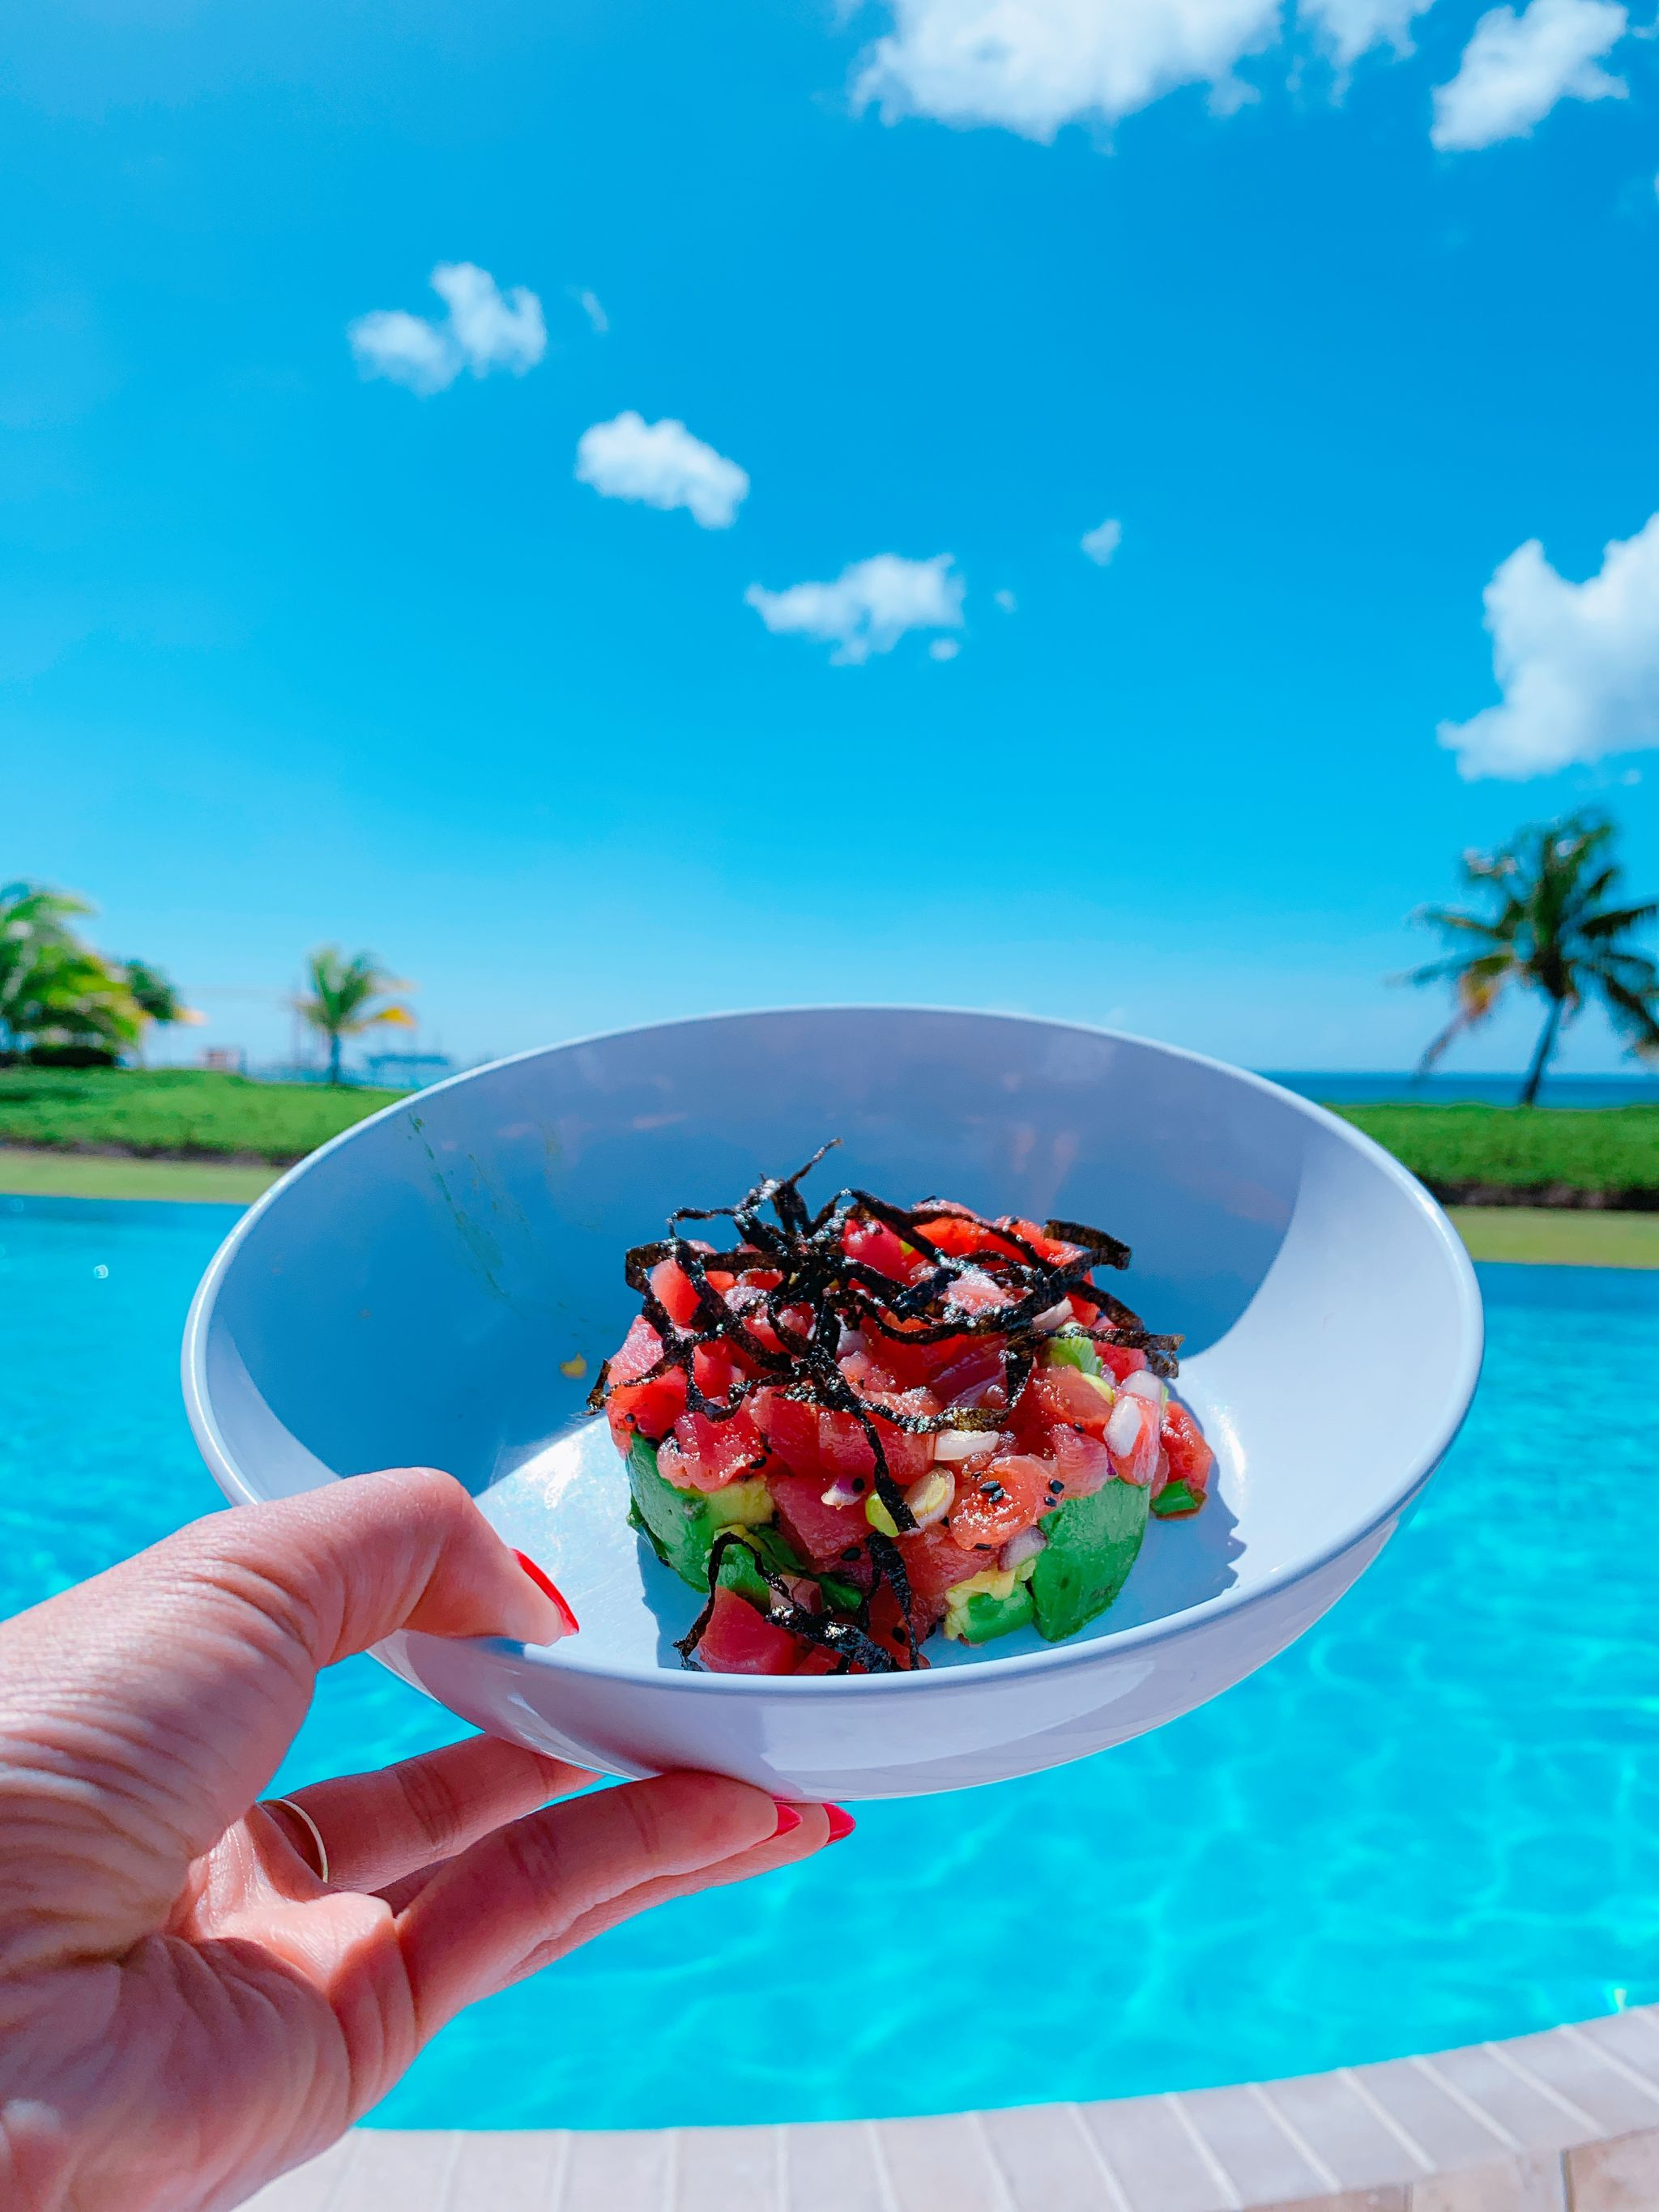 four seasons Nevis food, four seasons Nevis, Nevis travel guide, four seasons hotel, Jennifer Worman, chicago travel blogger, travel diary, trip to Nevis review, carribean vacation, dream vacation, girls trip, vacation style, carribean style, spring break destination